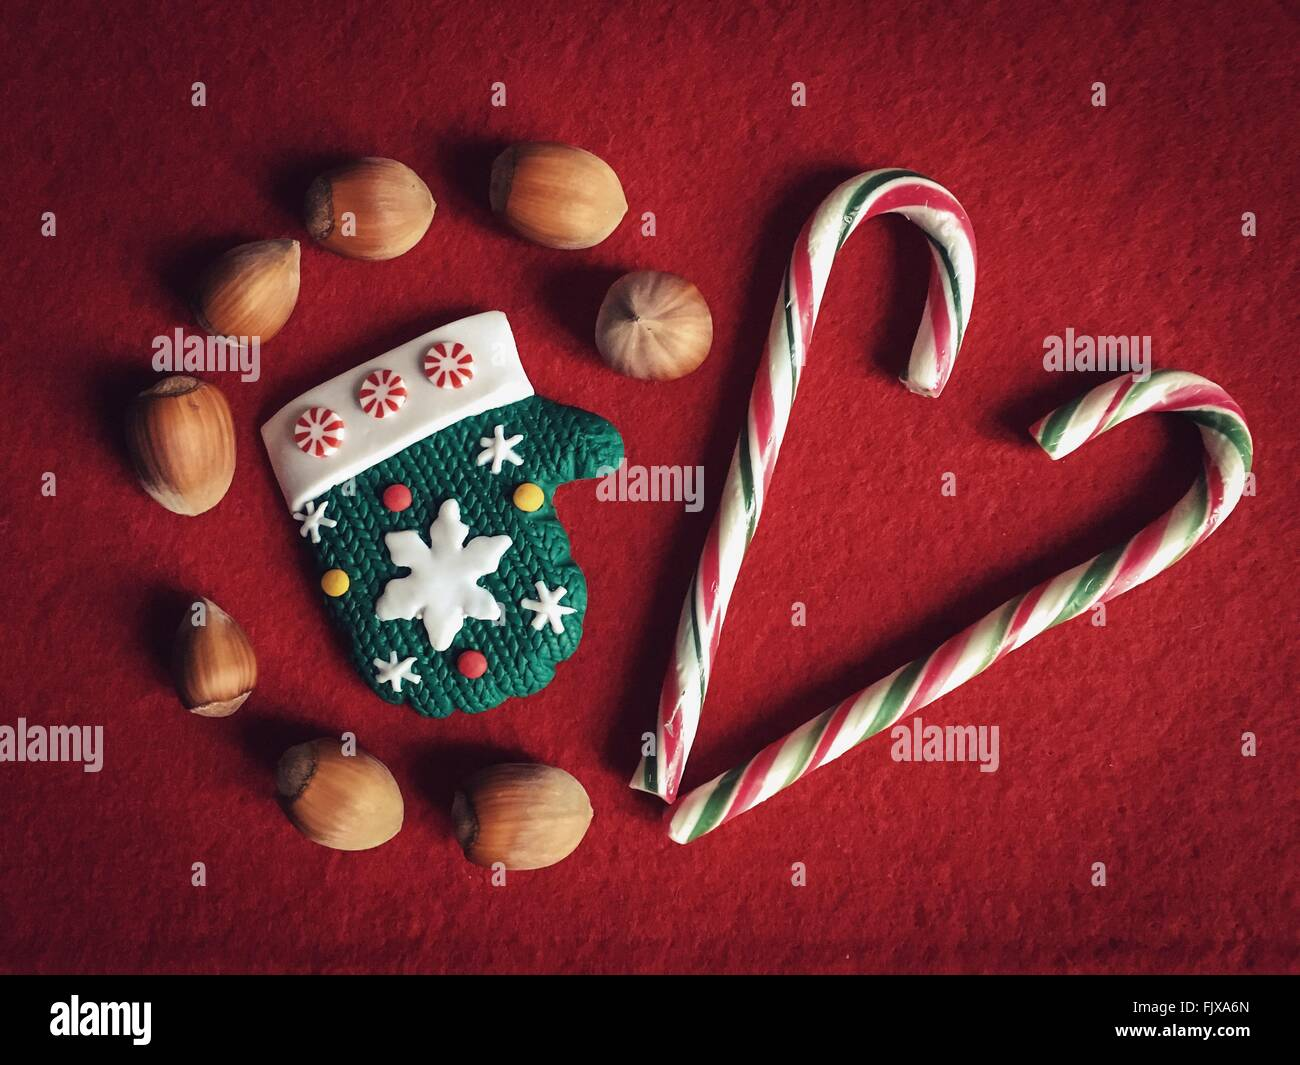 High Angle View Of Candies And Hazelnuts On Red Table - Stock Image